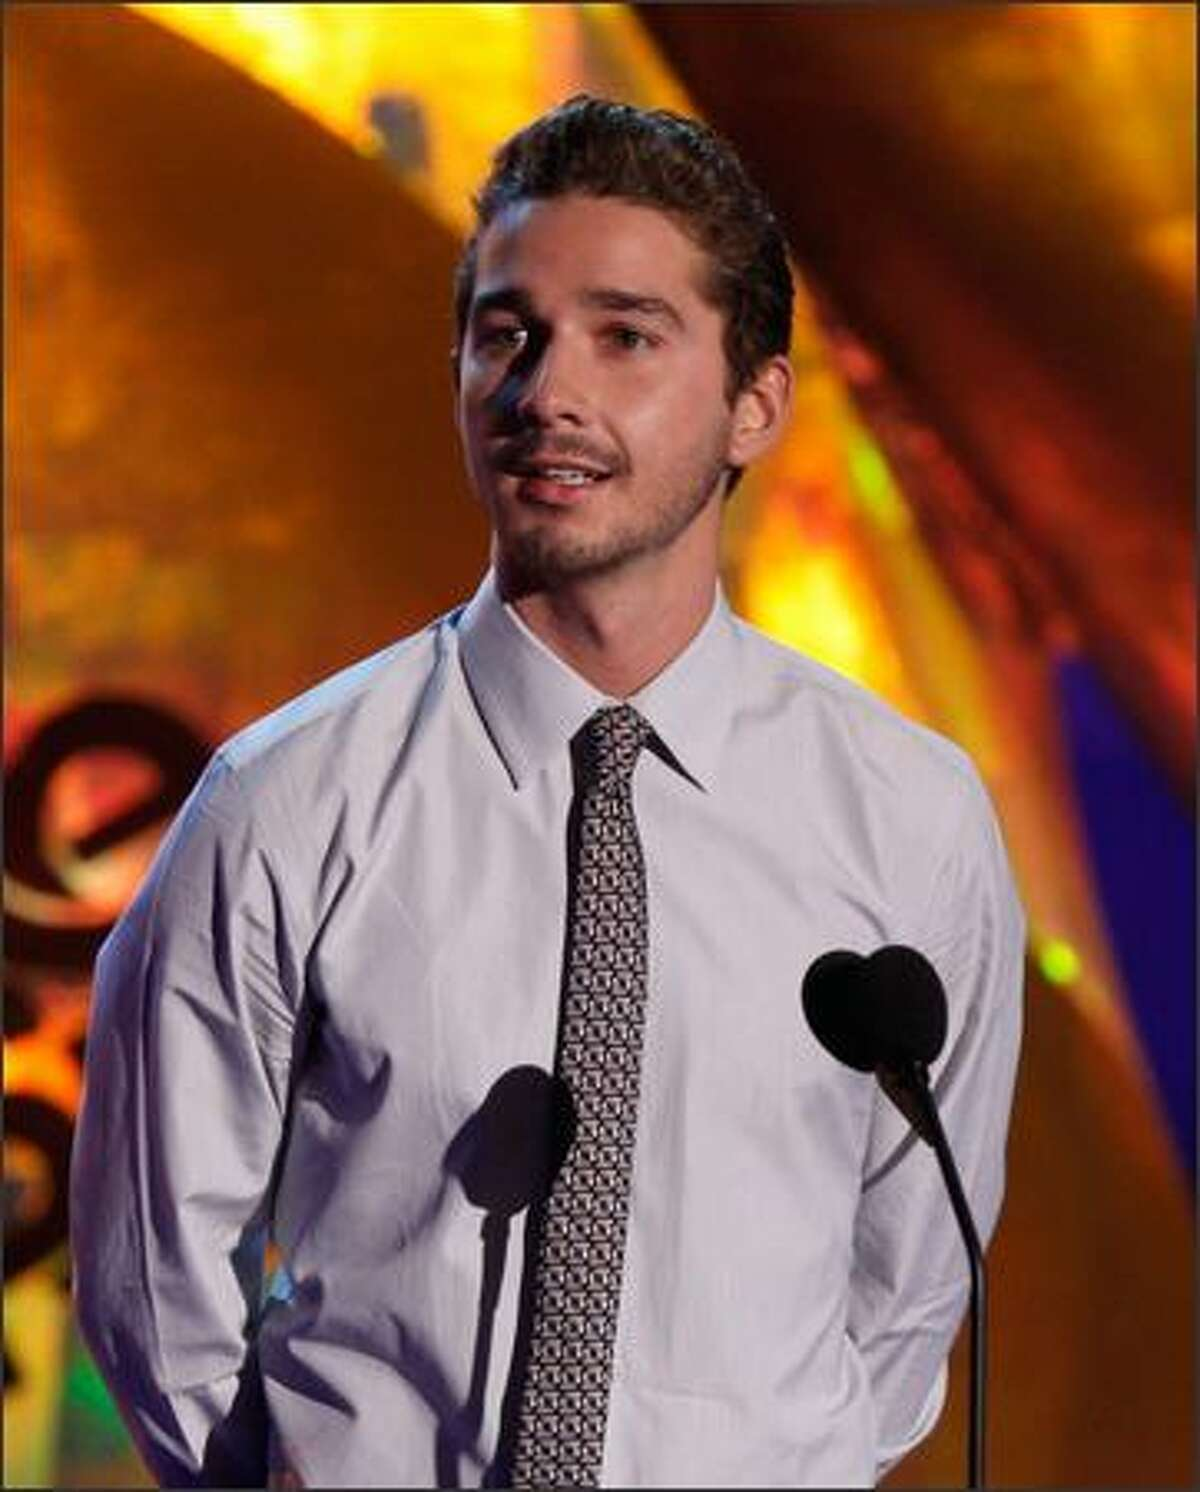 Actor Shia LaBeouf presents the Best Fight award onstage during the 18th Annual MTV Movie Awards held at the Gibson Amphitheatre on Sunday in Universal City, Calif.